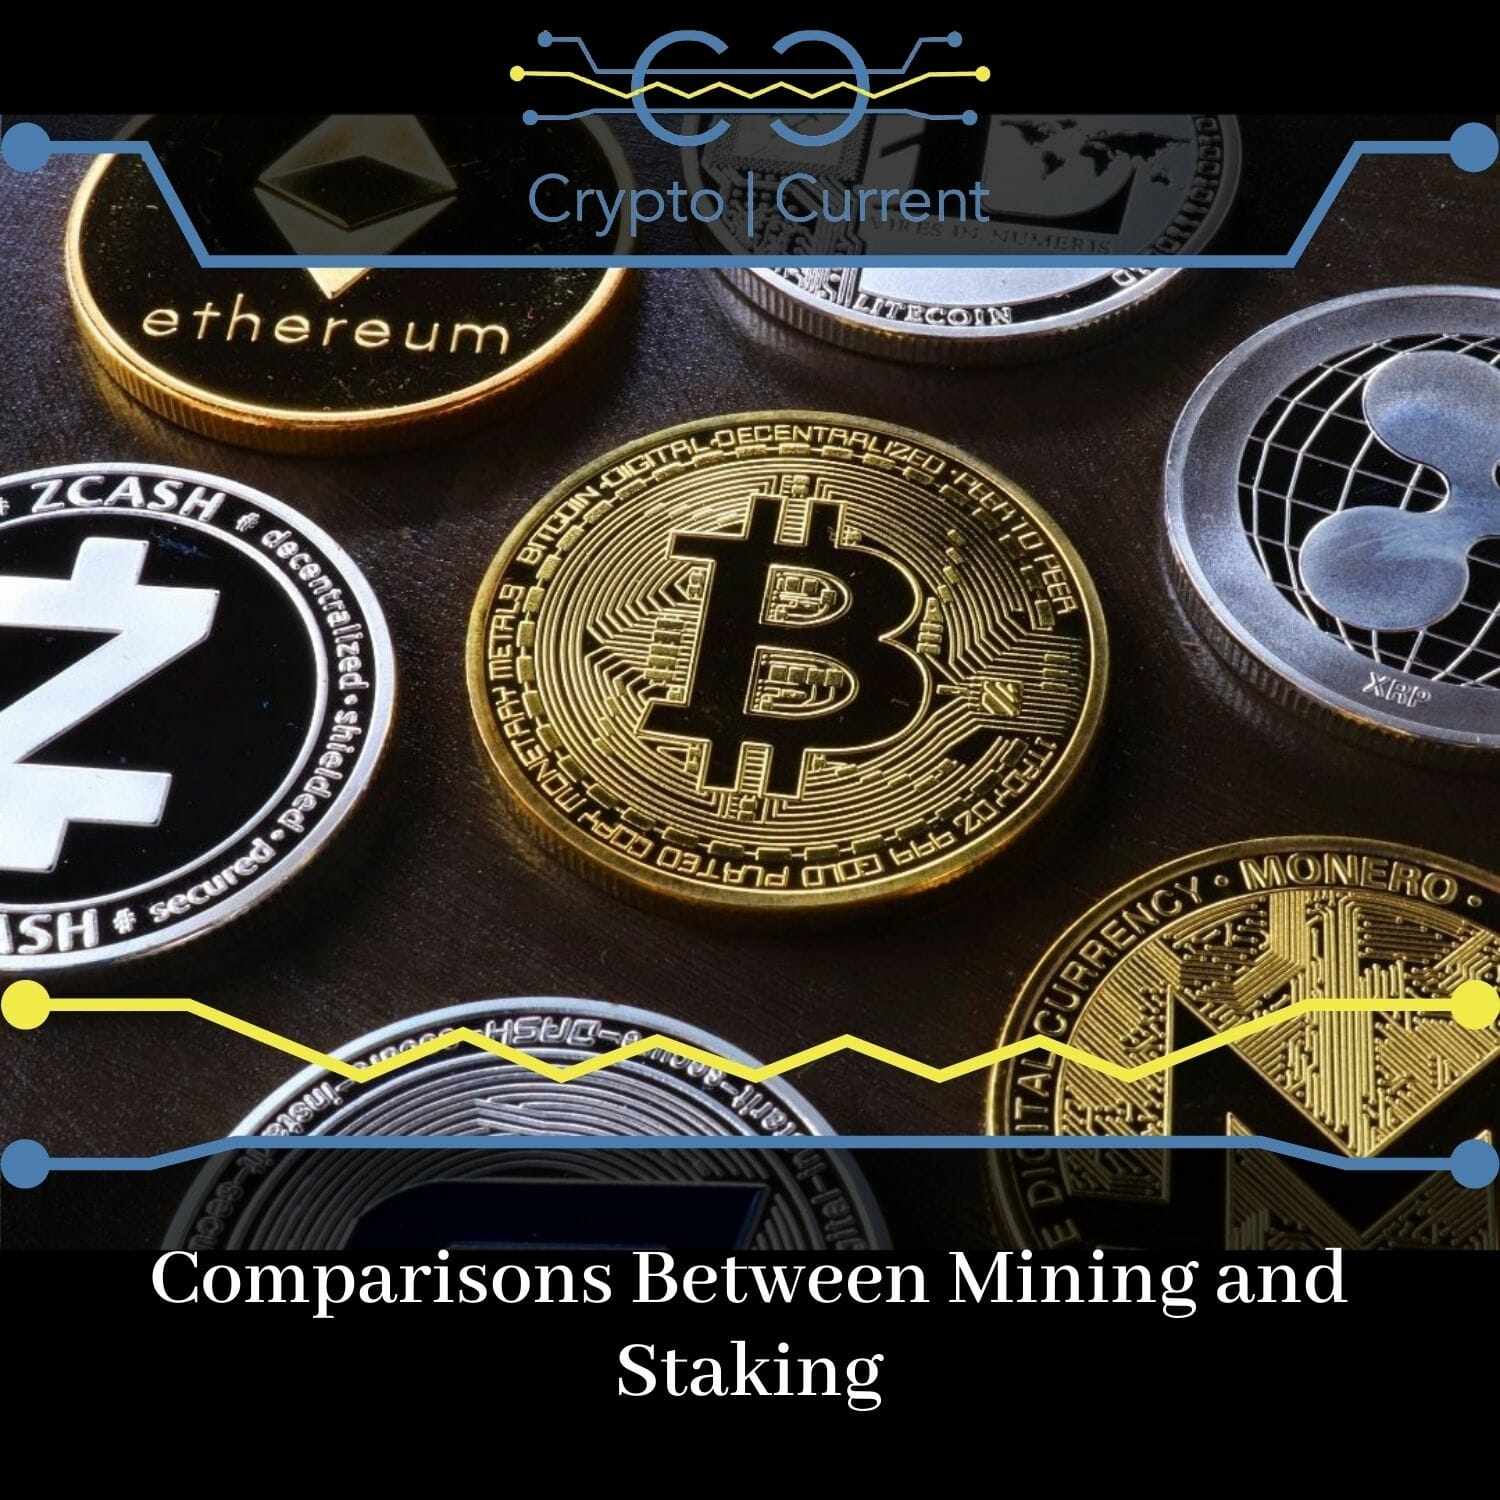 Comparisons Between Mining and Staking